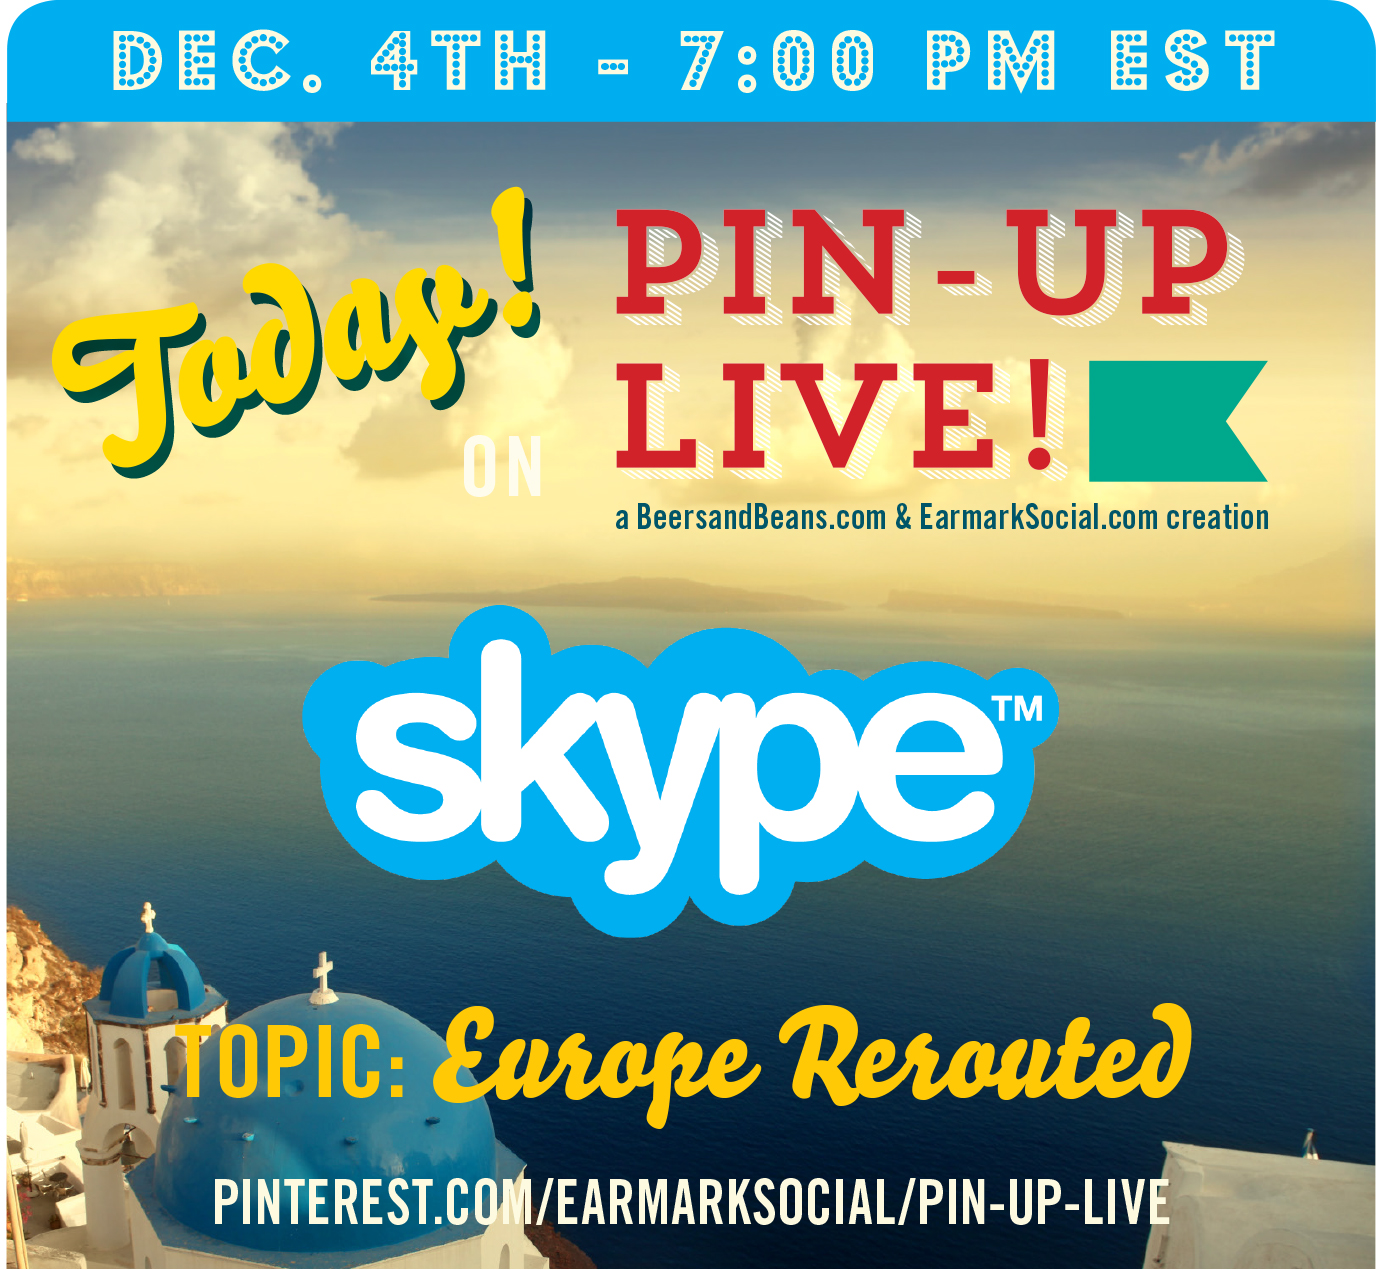 Join Us on Pinterest Tomorrow (12/4) to Talk Travel with @Skype #PinUpLive